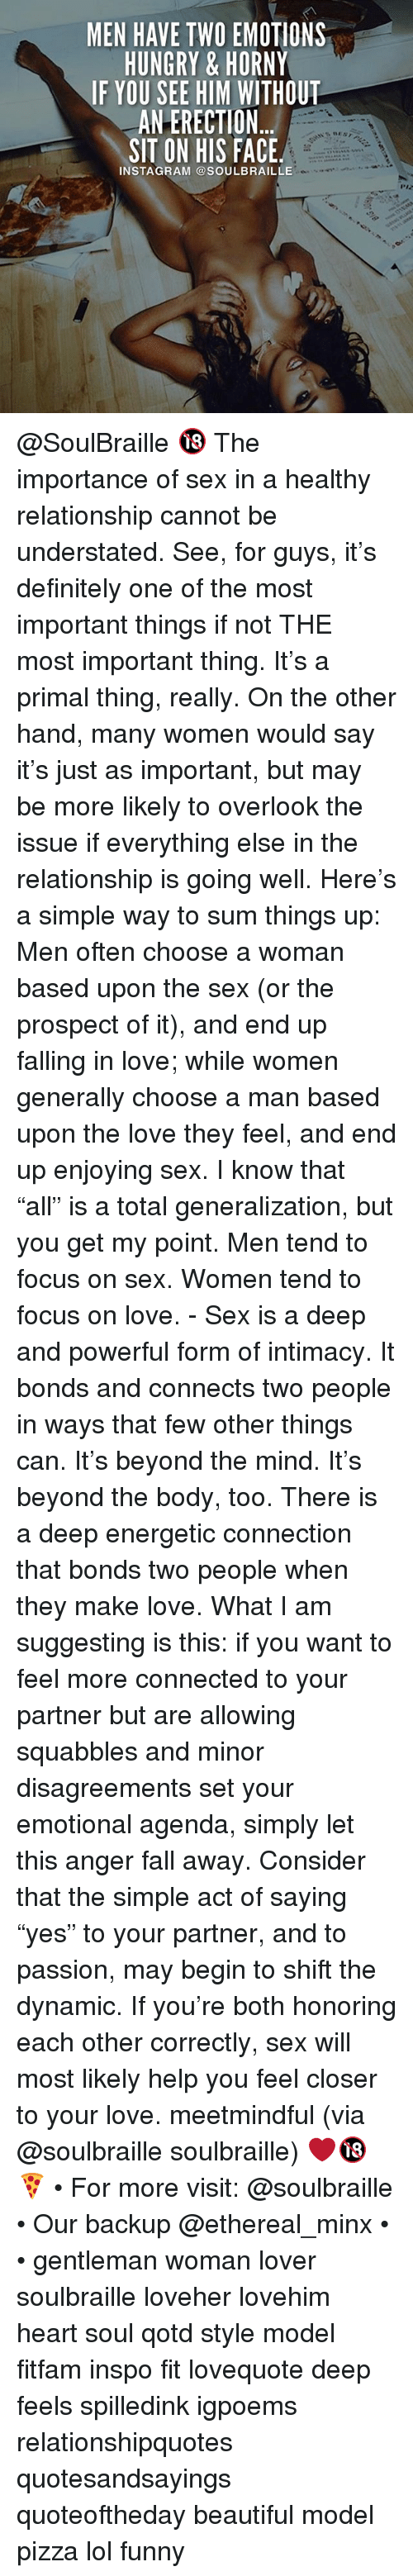 the importance of having sex